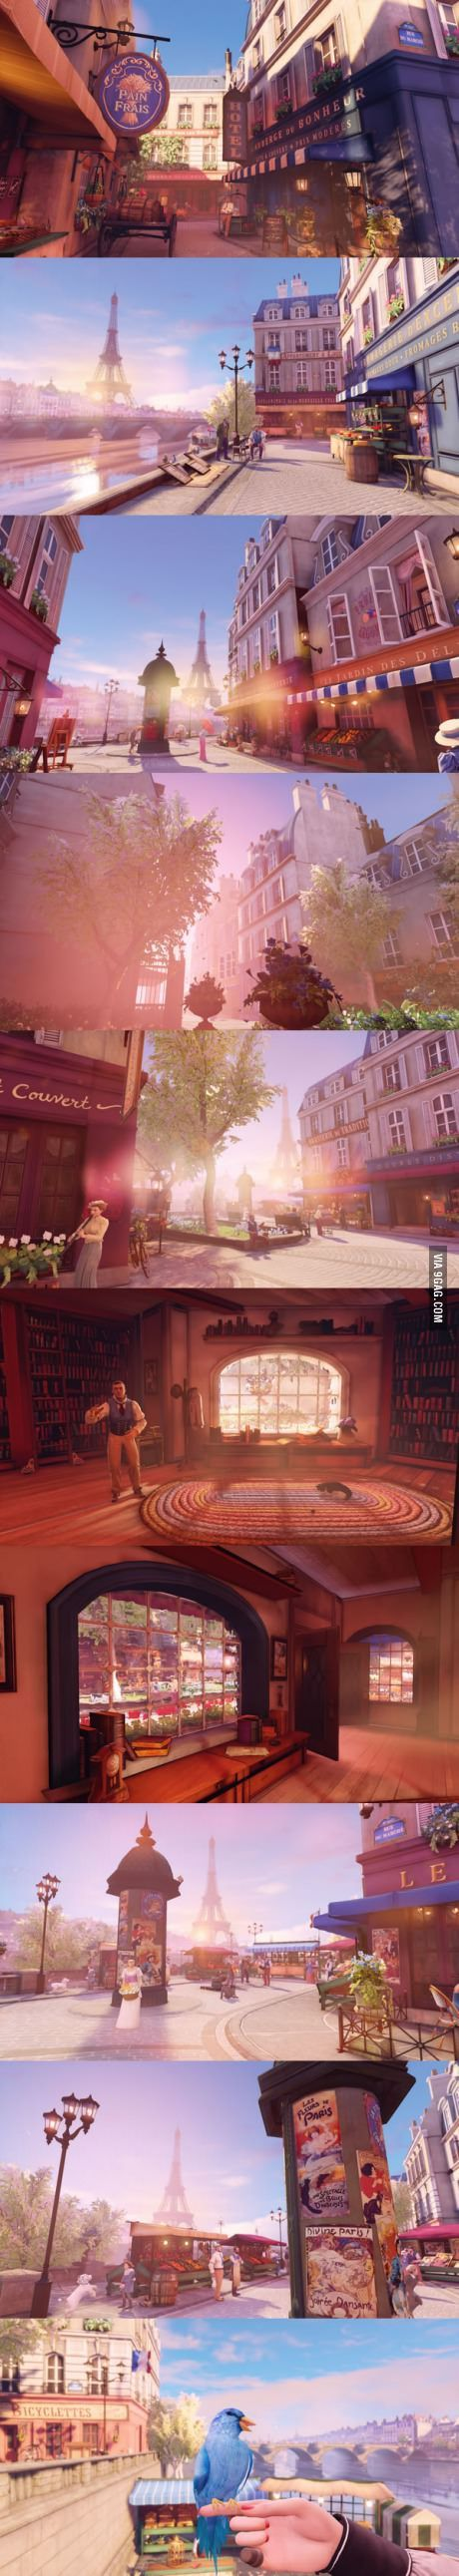 Holy shit, quite possibly the most beautiful locations in a game I've ever seen. [Bioshock Infinite DLC]